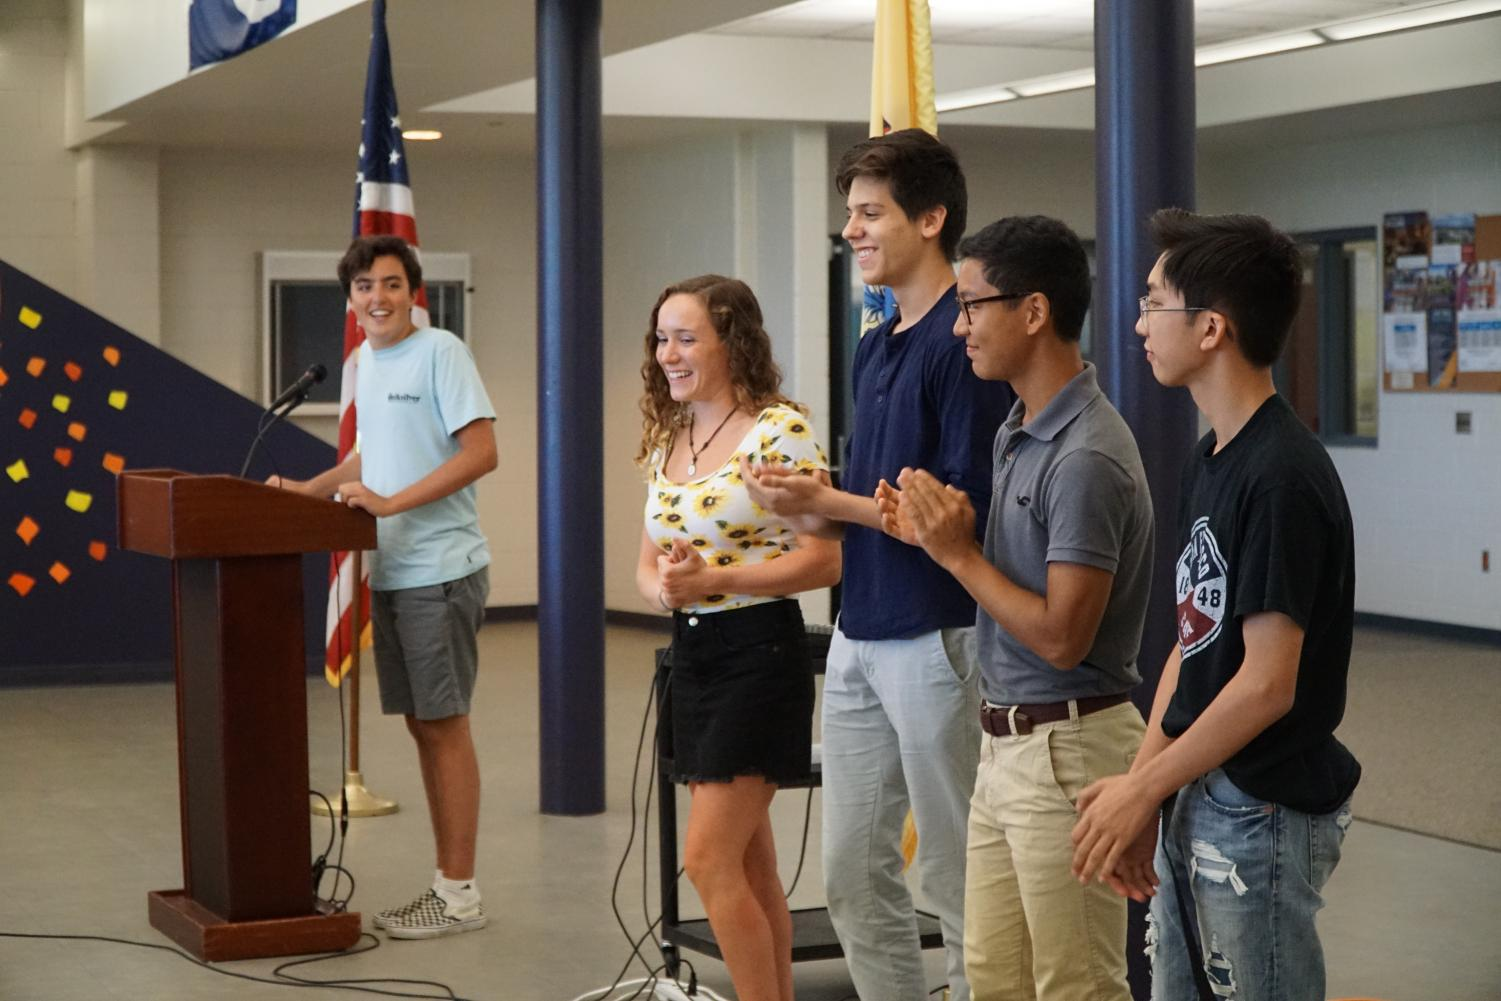 Senior and SGA President Liam Marshall, left, announces the rest of the 2018-19 SGA: senior and Vice President Emma Hecht of Wall and junior council members Dane Tedder of Ocean, Evan Kuo of Tinton Falls and Liam Jamolod of Howell.